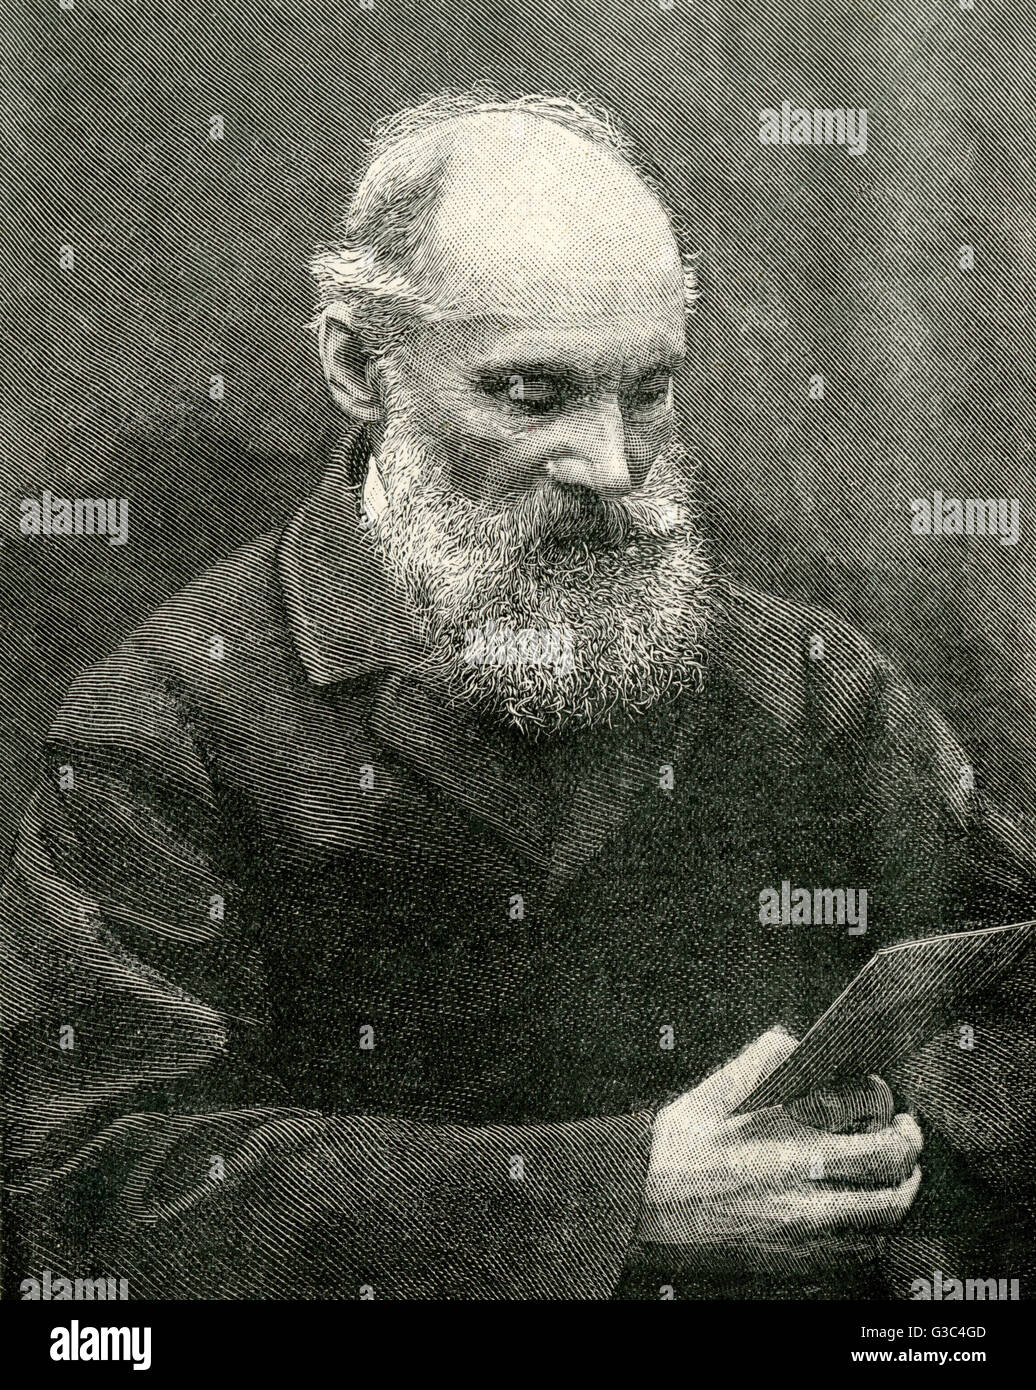 Sir William Thomson, 1st Baron Kelvin of Largs (1824-1907), British mathematical physicist and engineer.     Date: - Stock Image